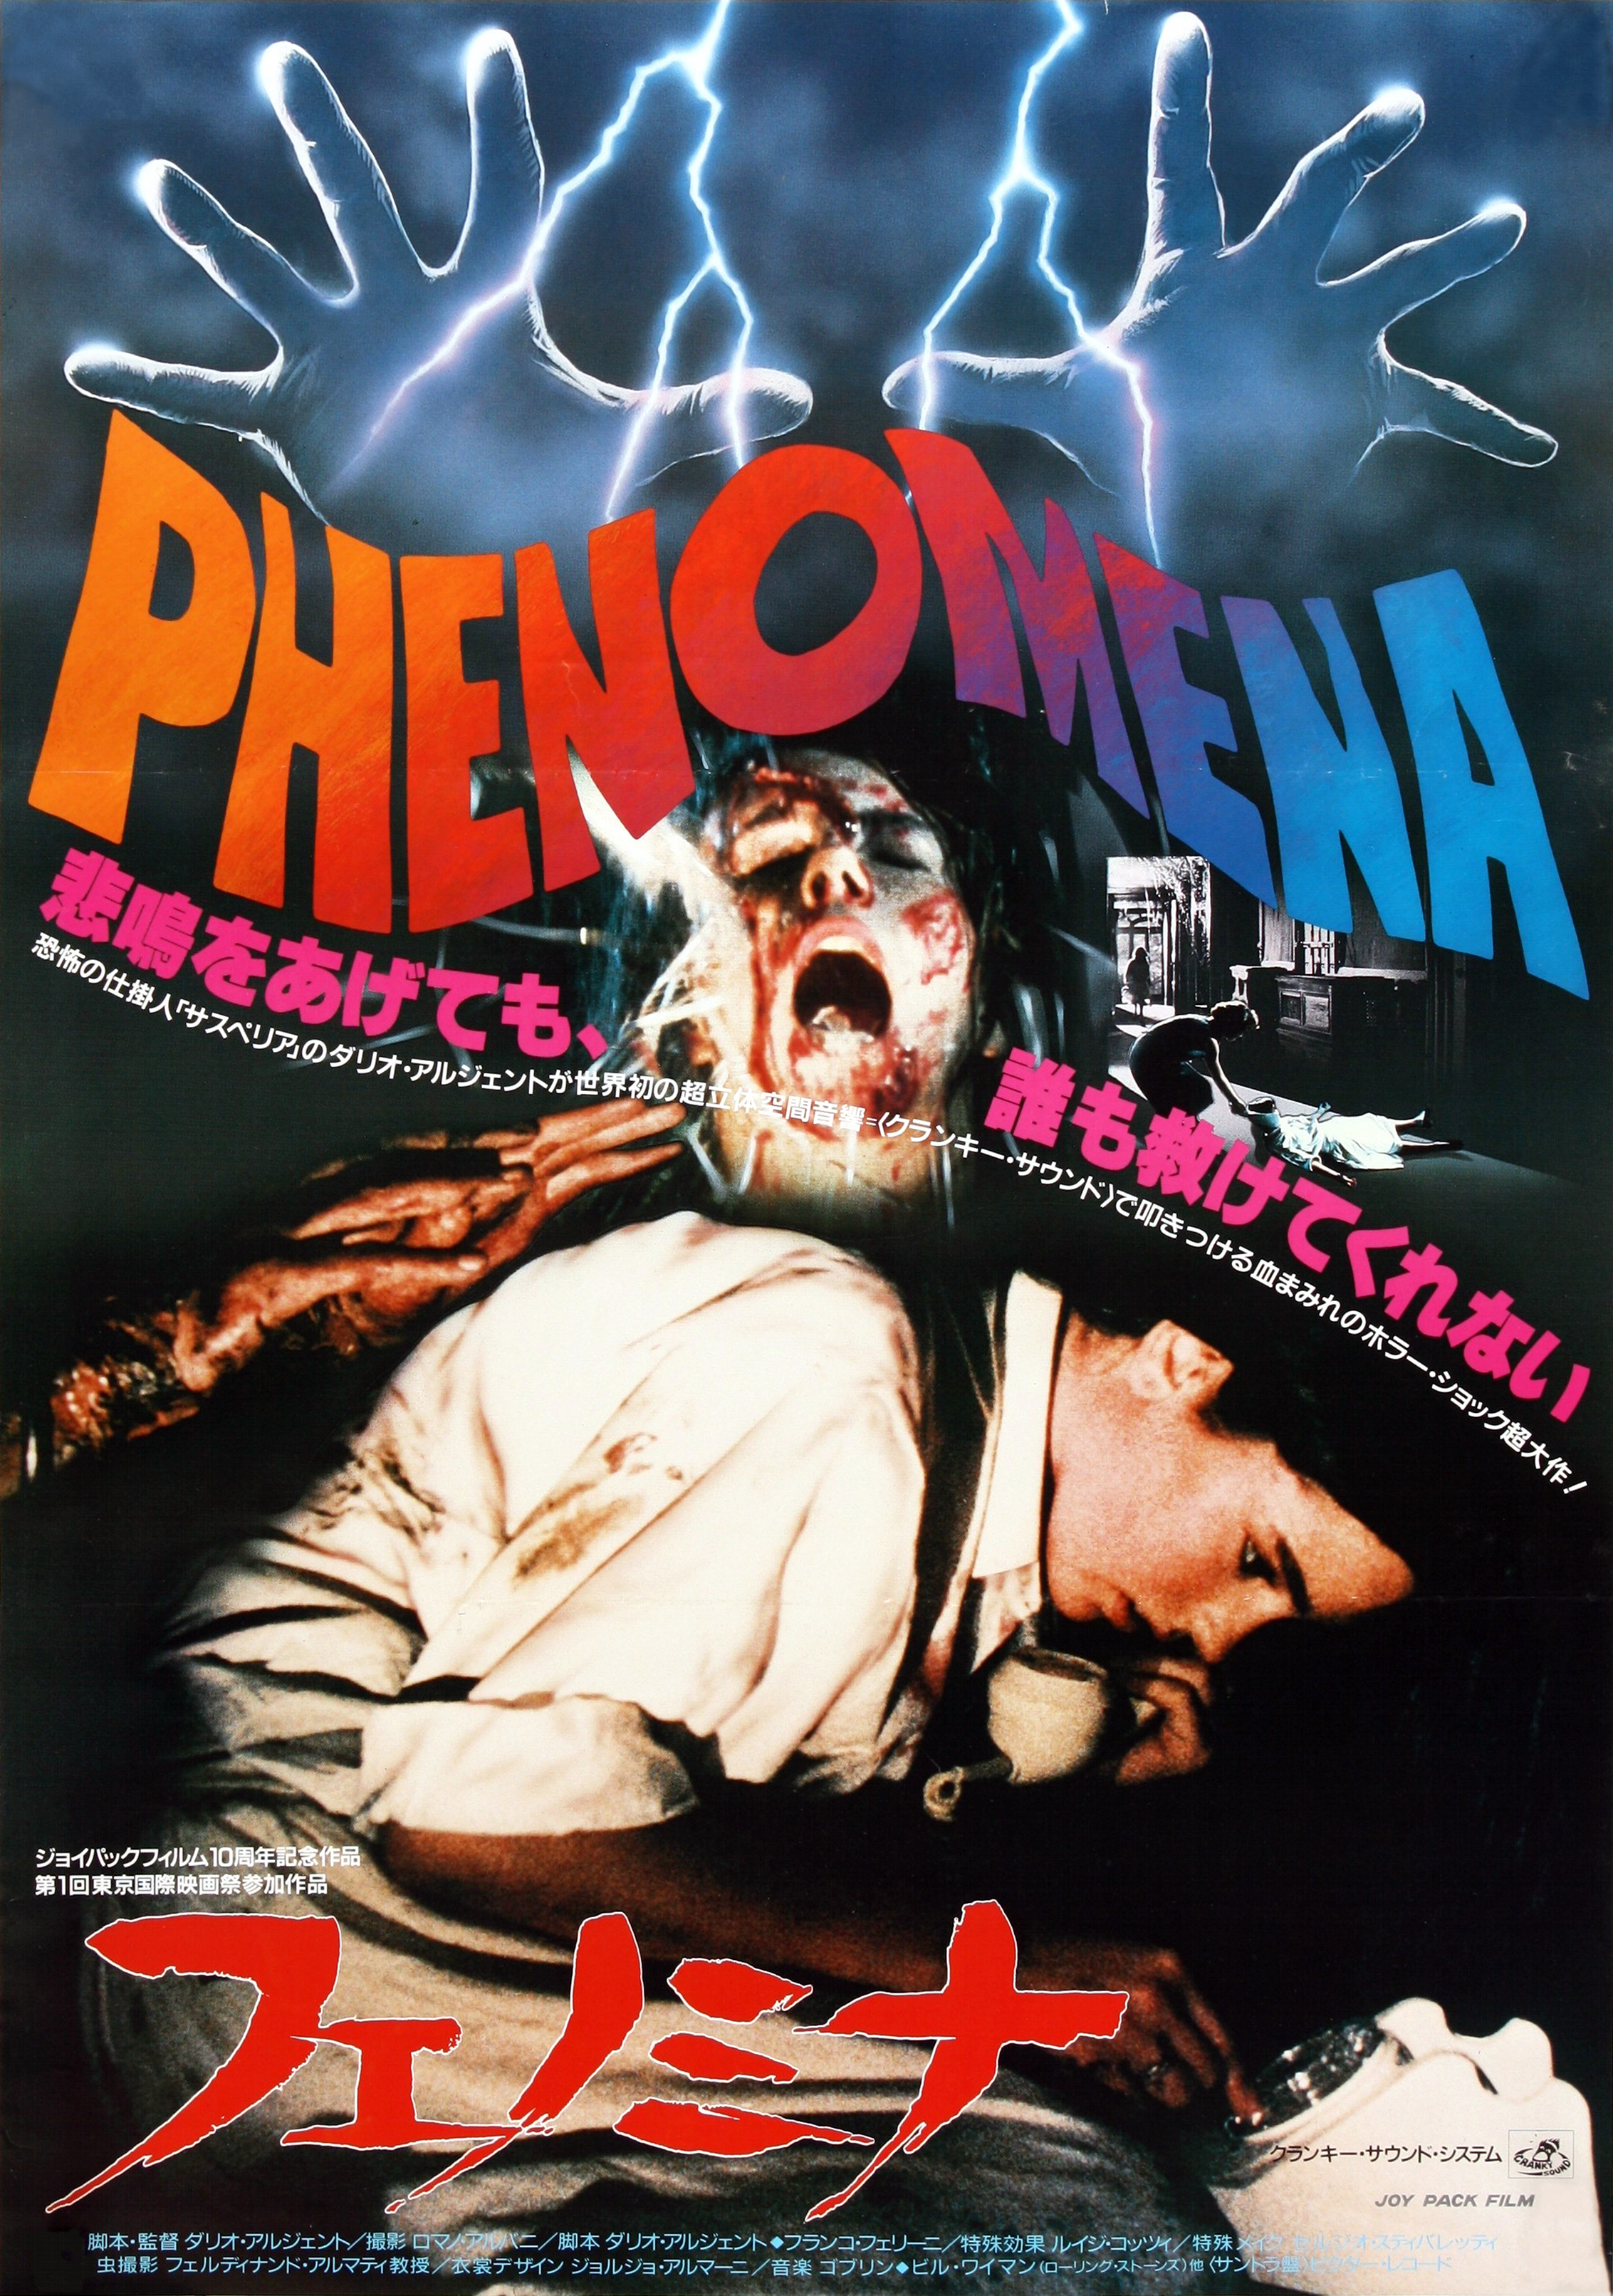 Phenomena Japanese poster